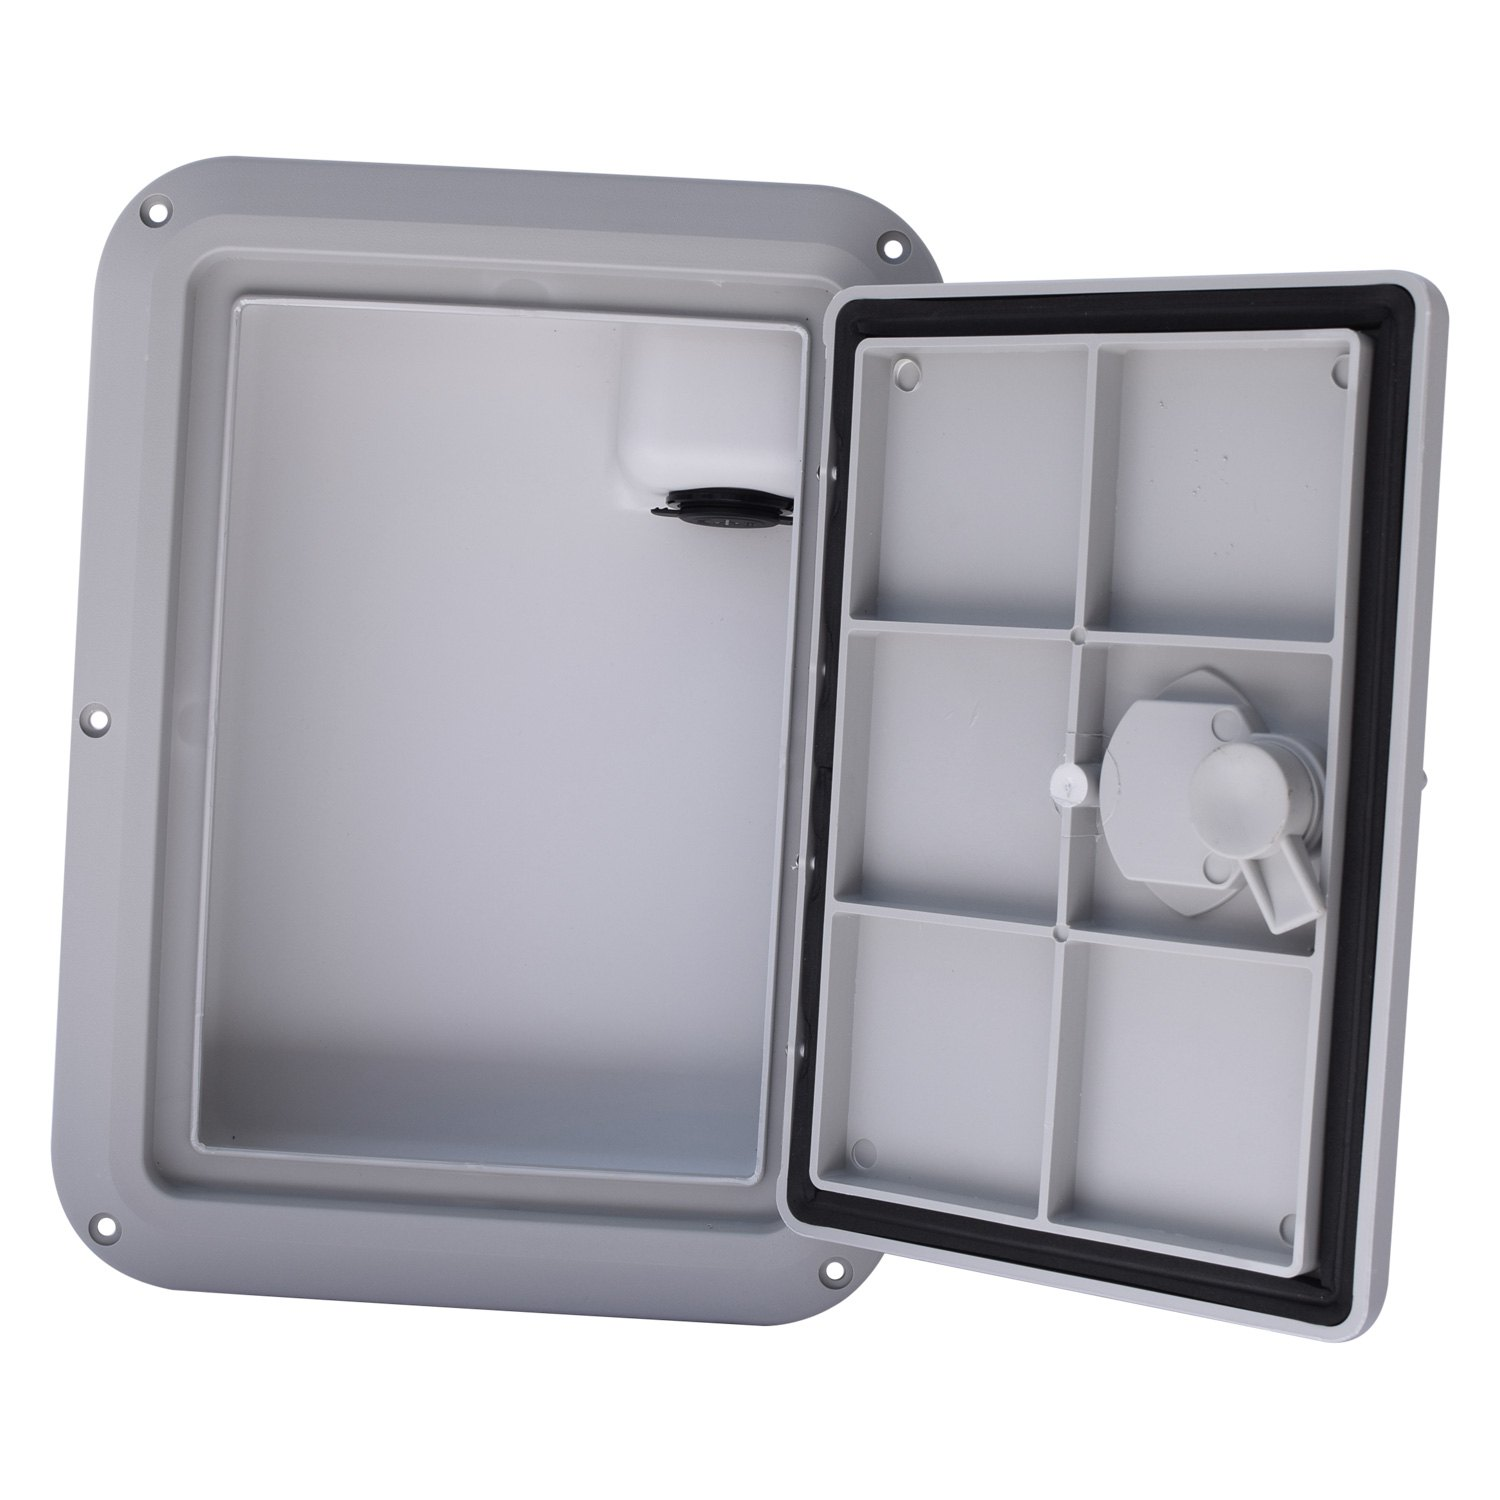 Off White 9 x 12 DPG912MW-USB DPI Marine Glove Box with USB Charging Station in Marine White